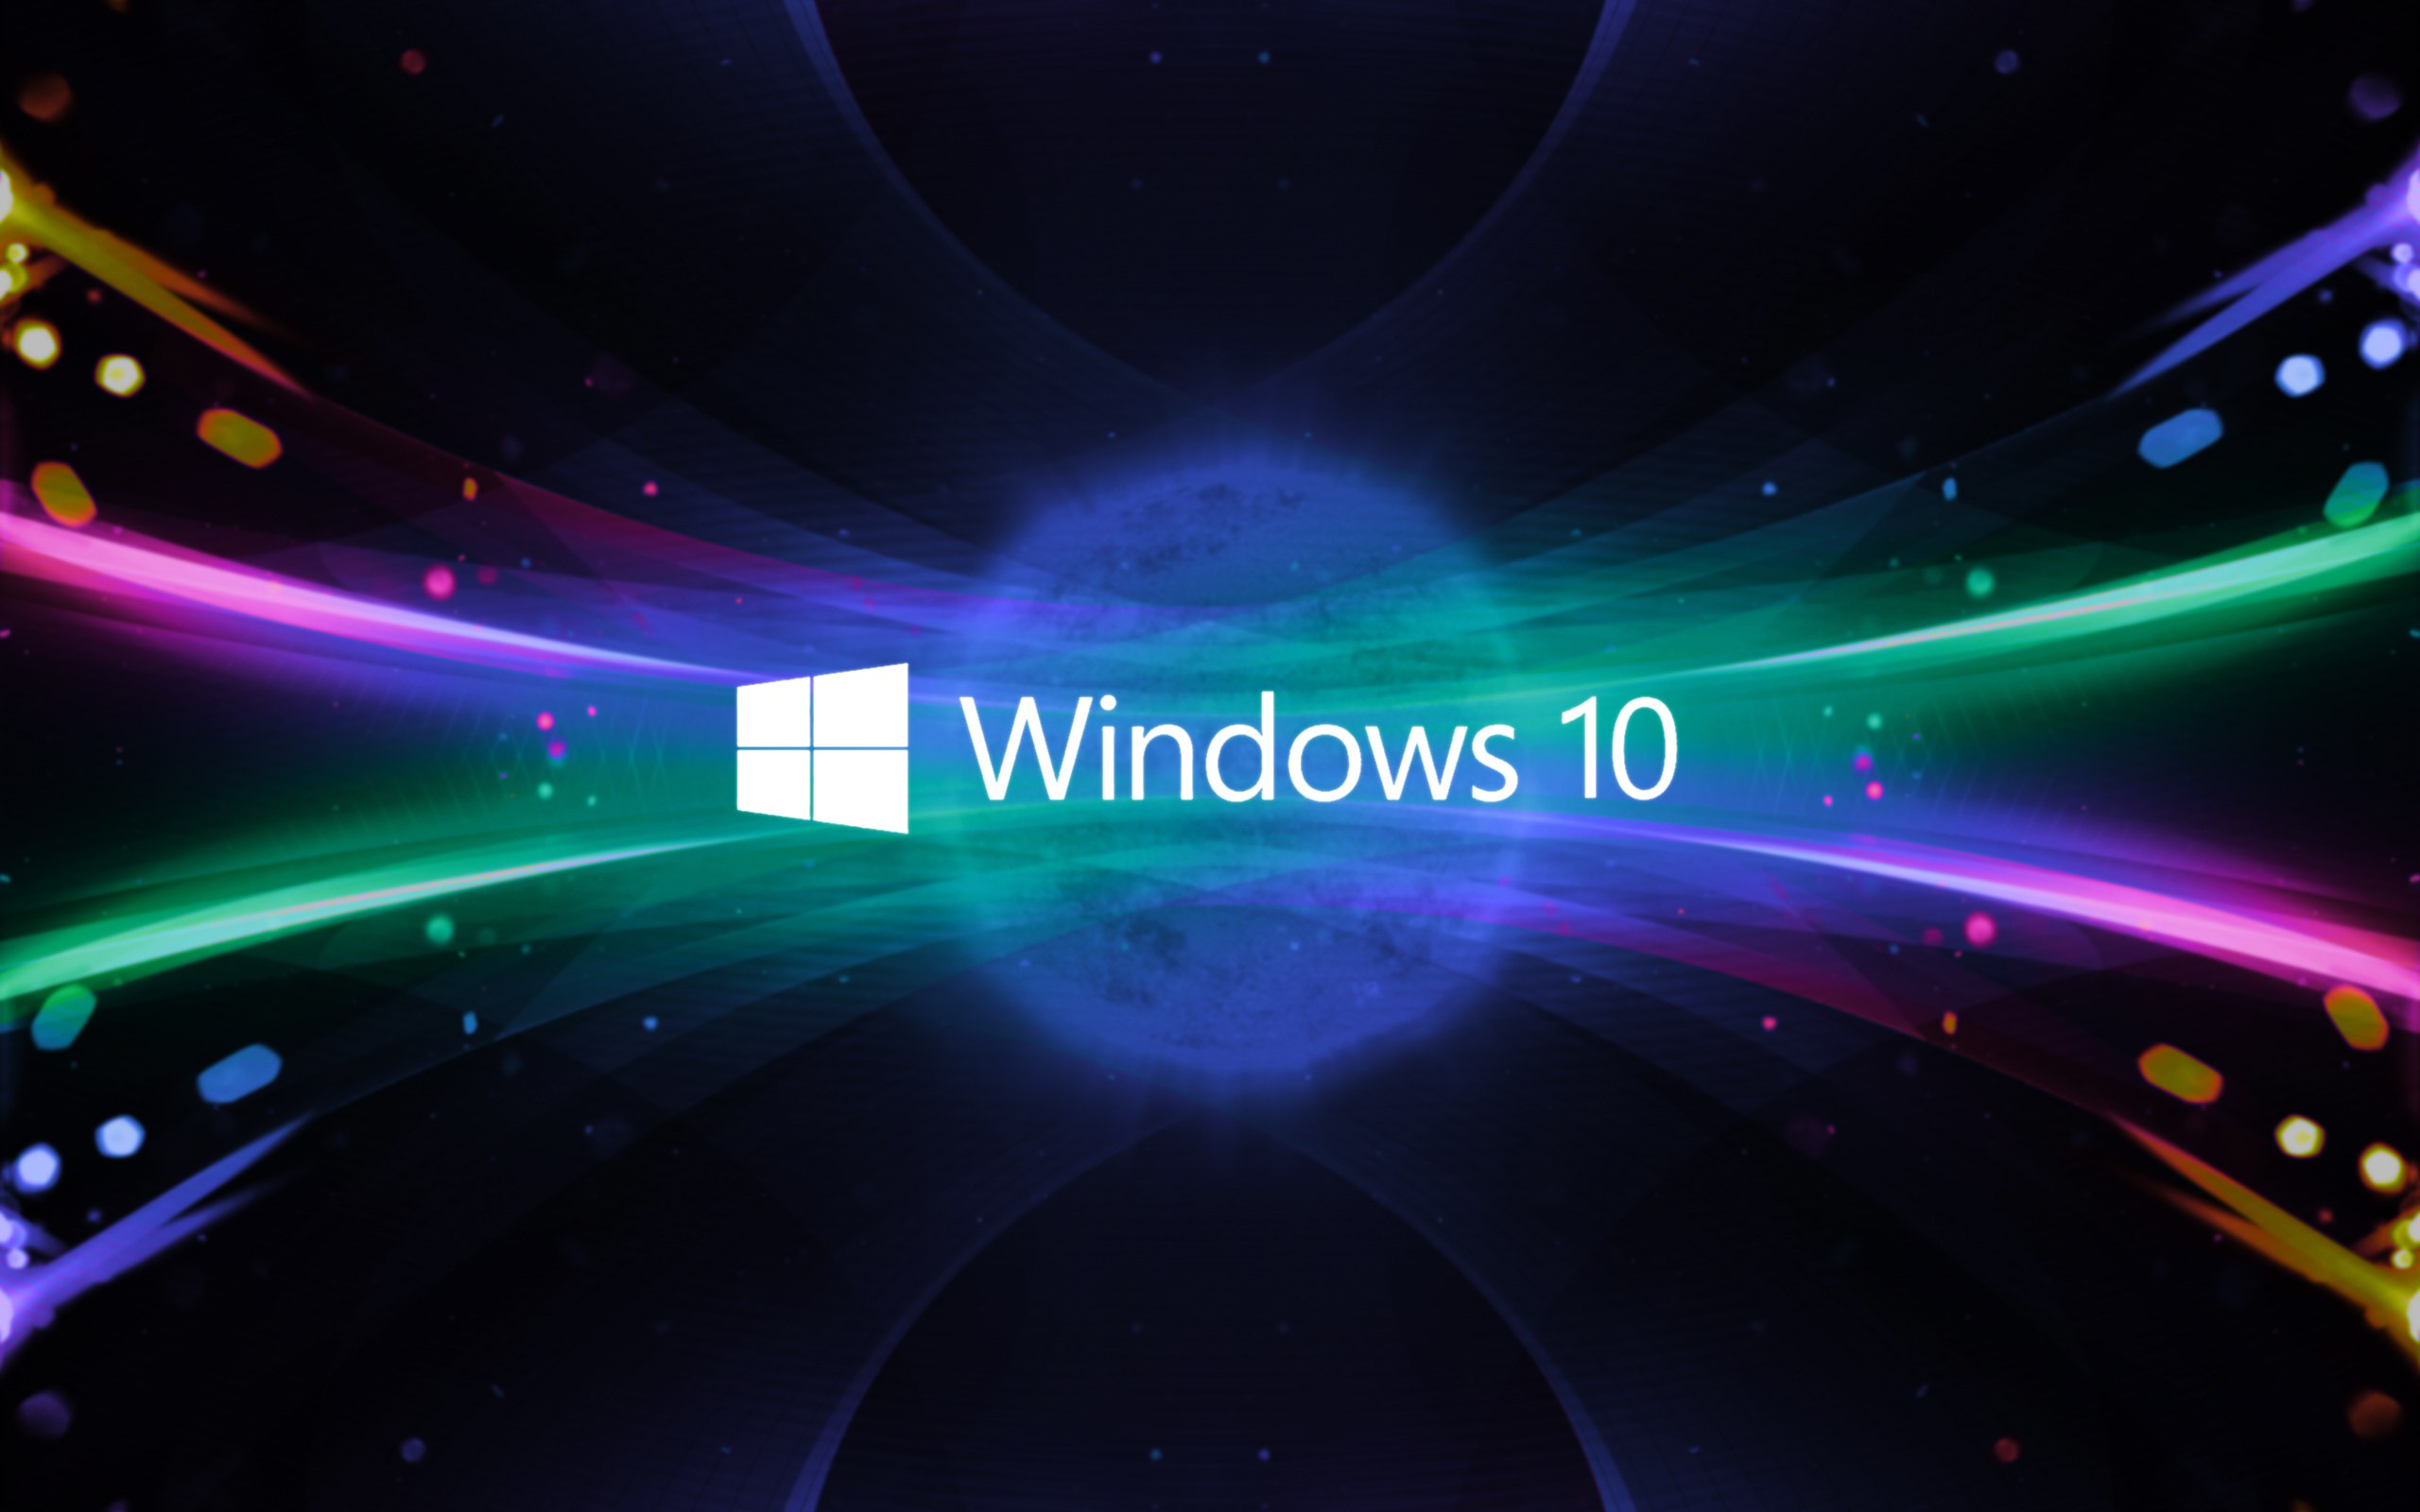 Sfondi live windows 10